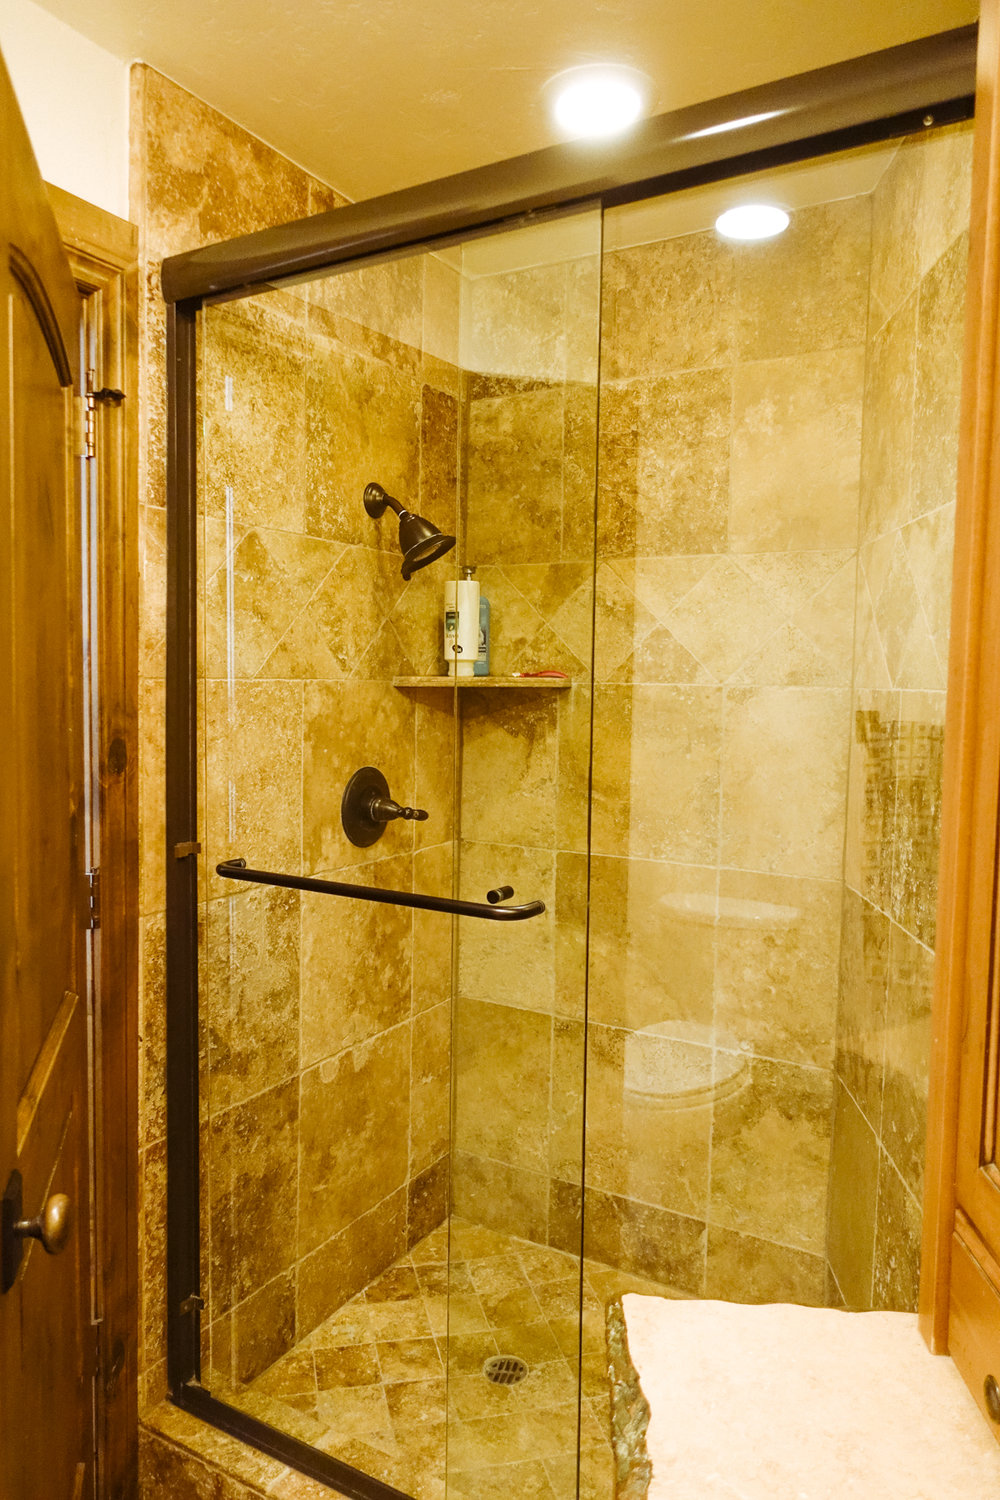 013 GUEST ROOM SHOWER.jpg